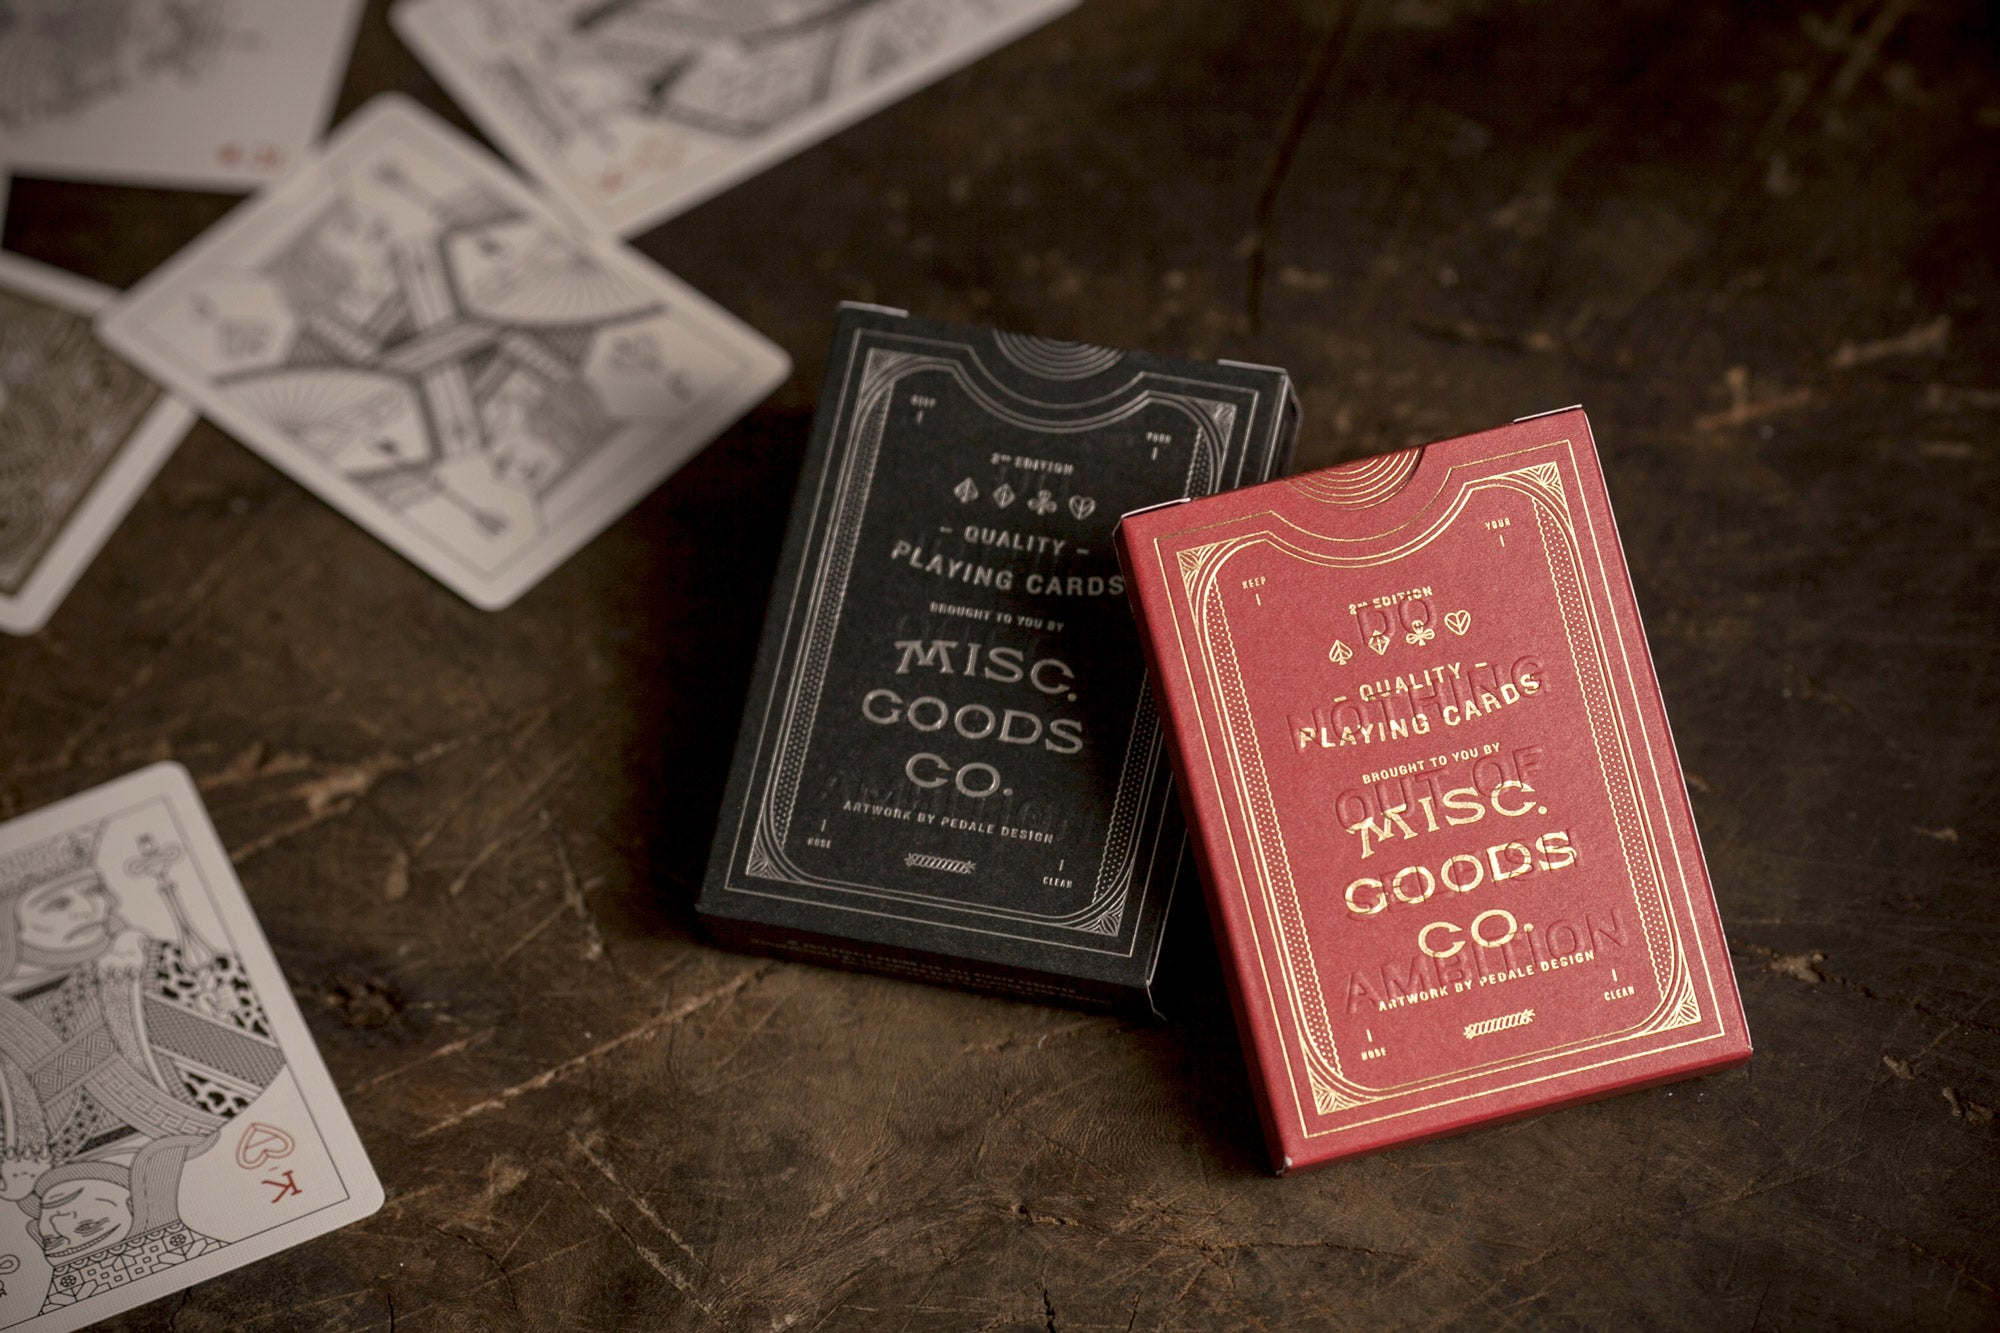 Misc. Goods Co. Luxury Playing Cards Proof of Concept Photo by Tyler Deeb